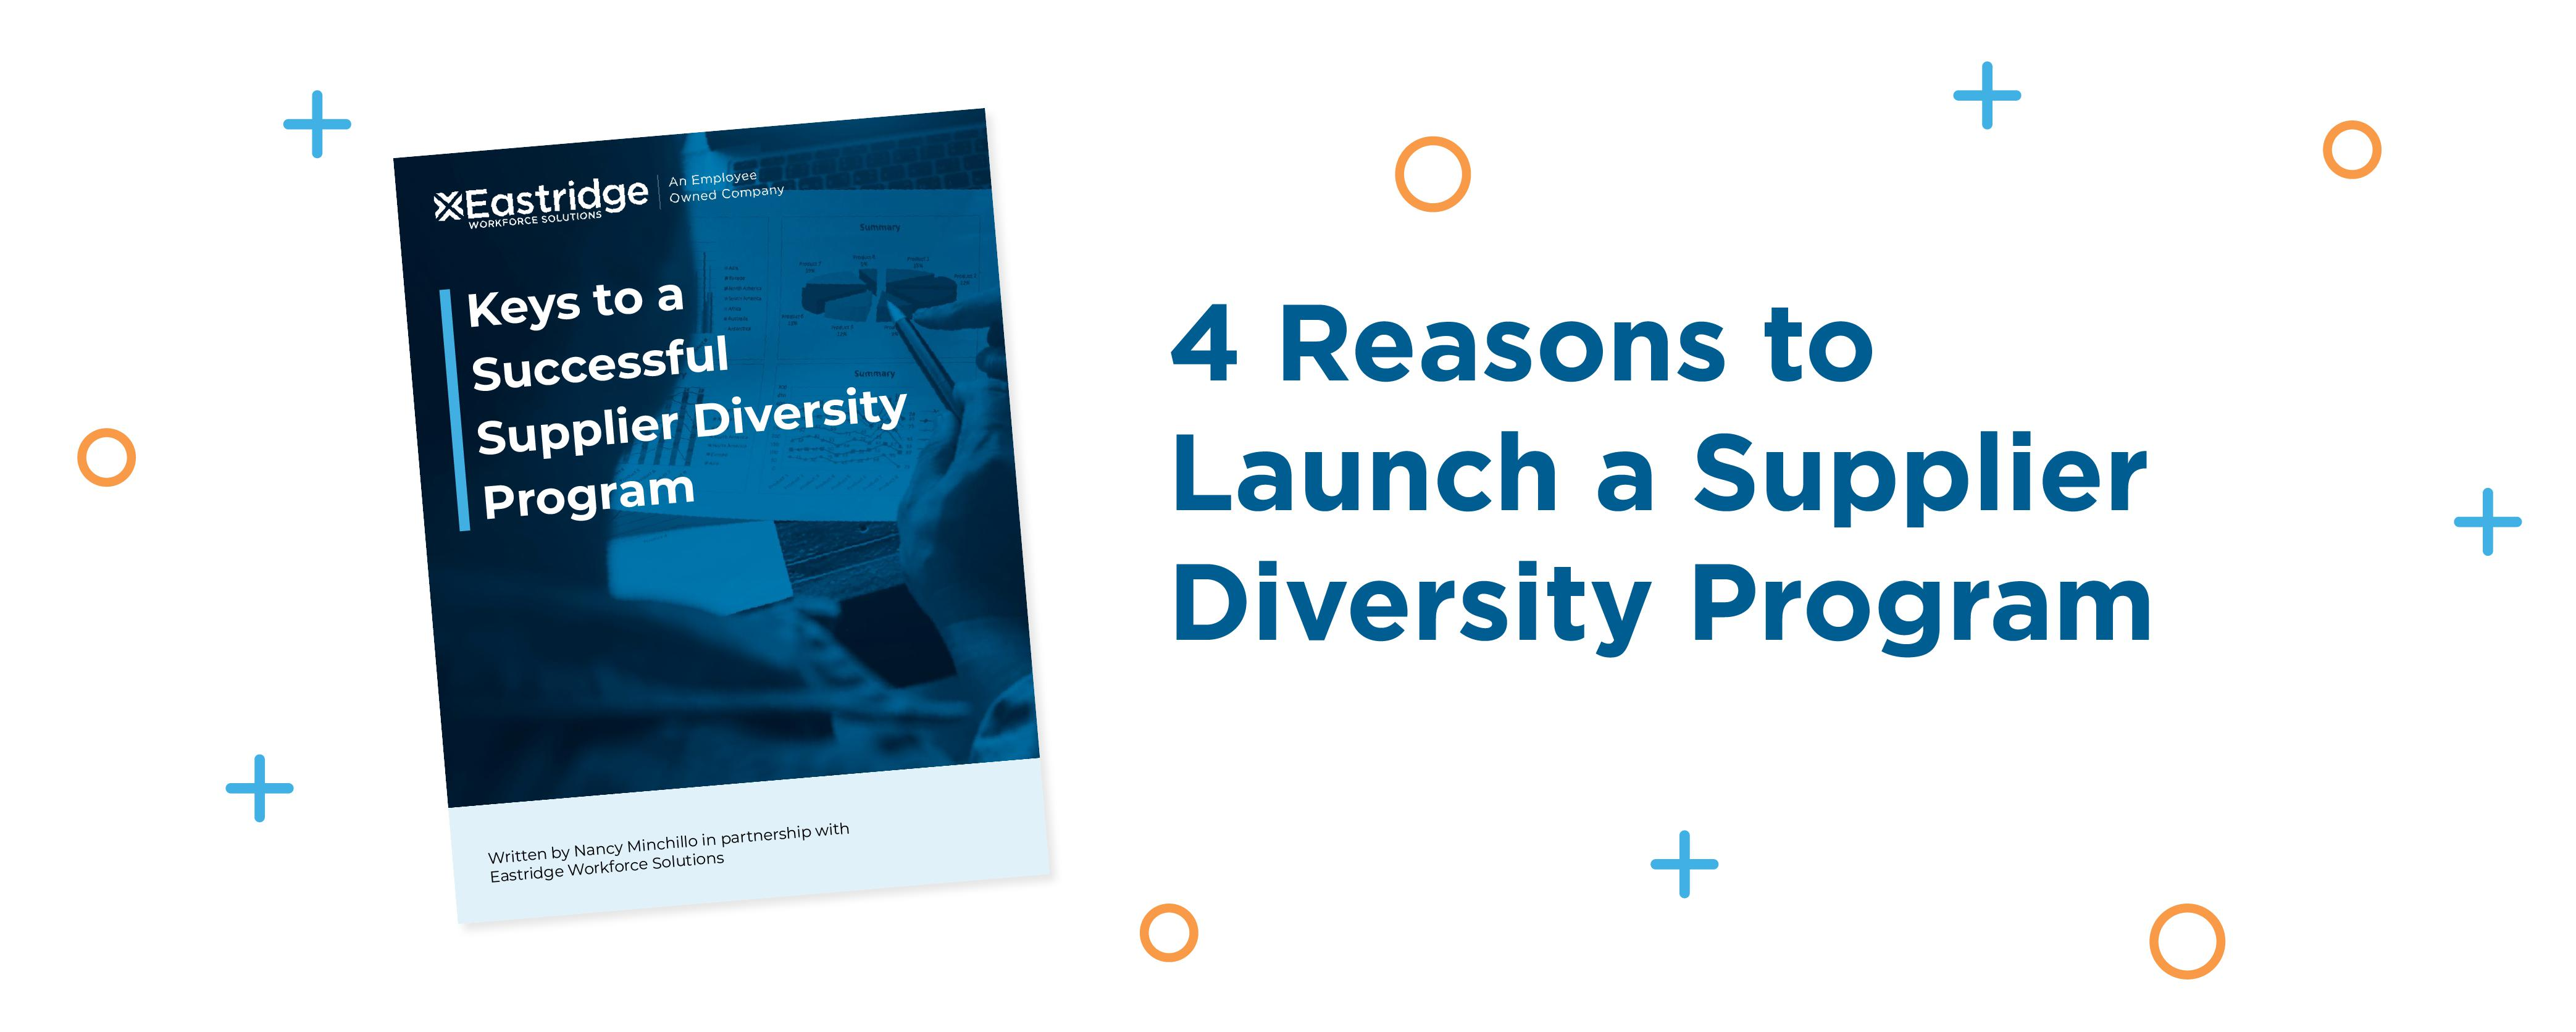 4 Reasons to Launch a Supplier Diversity Program